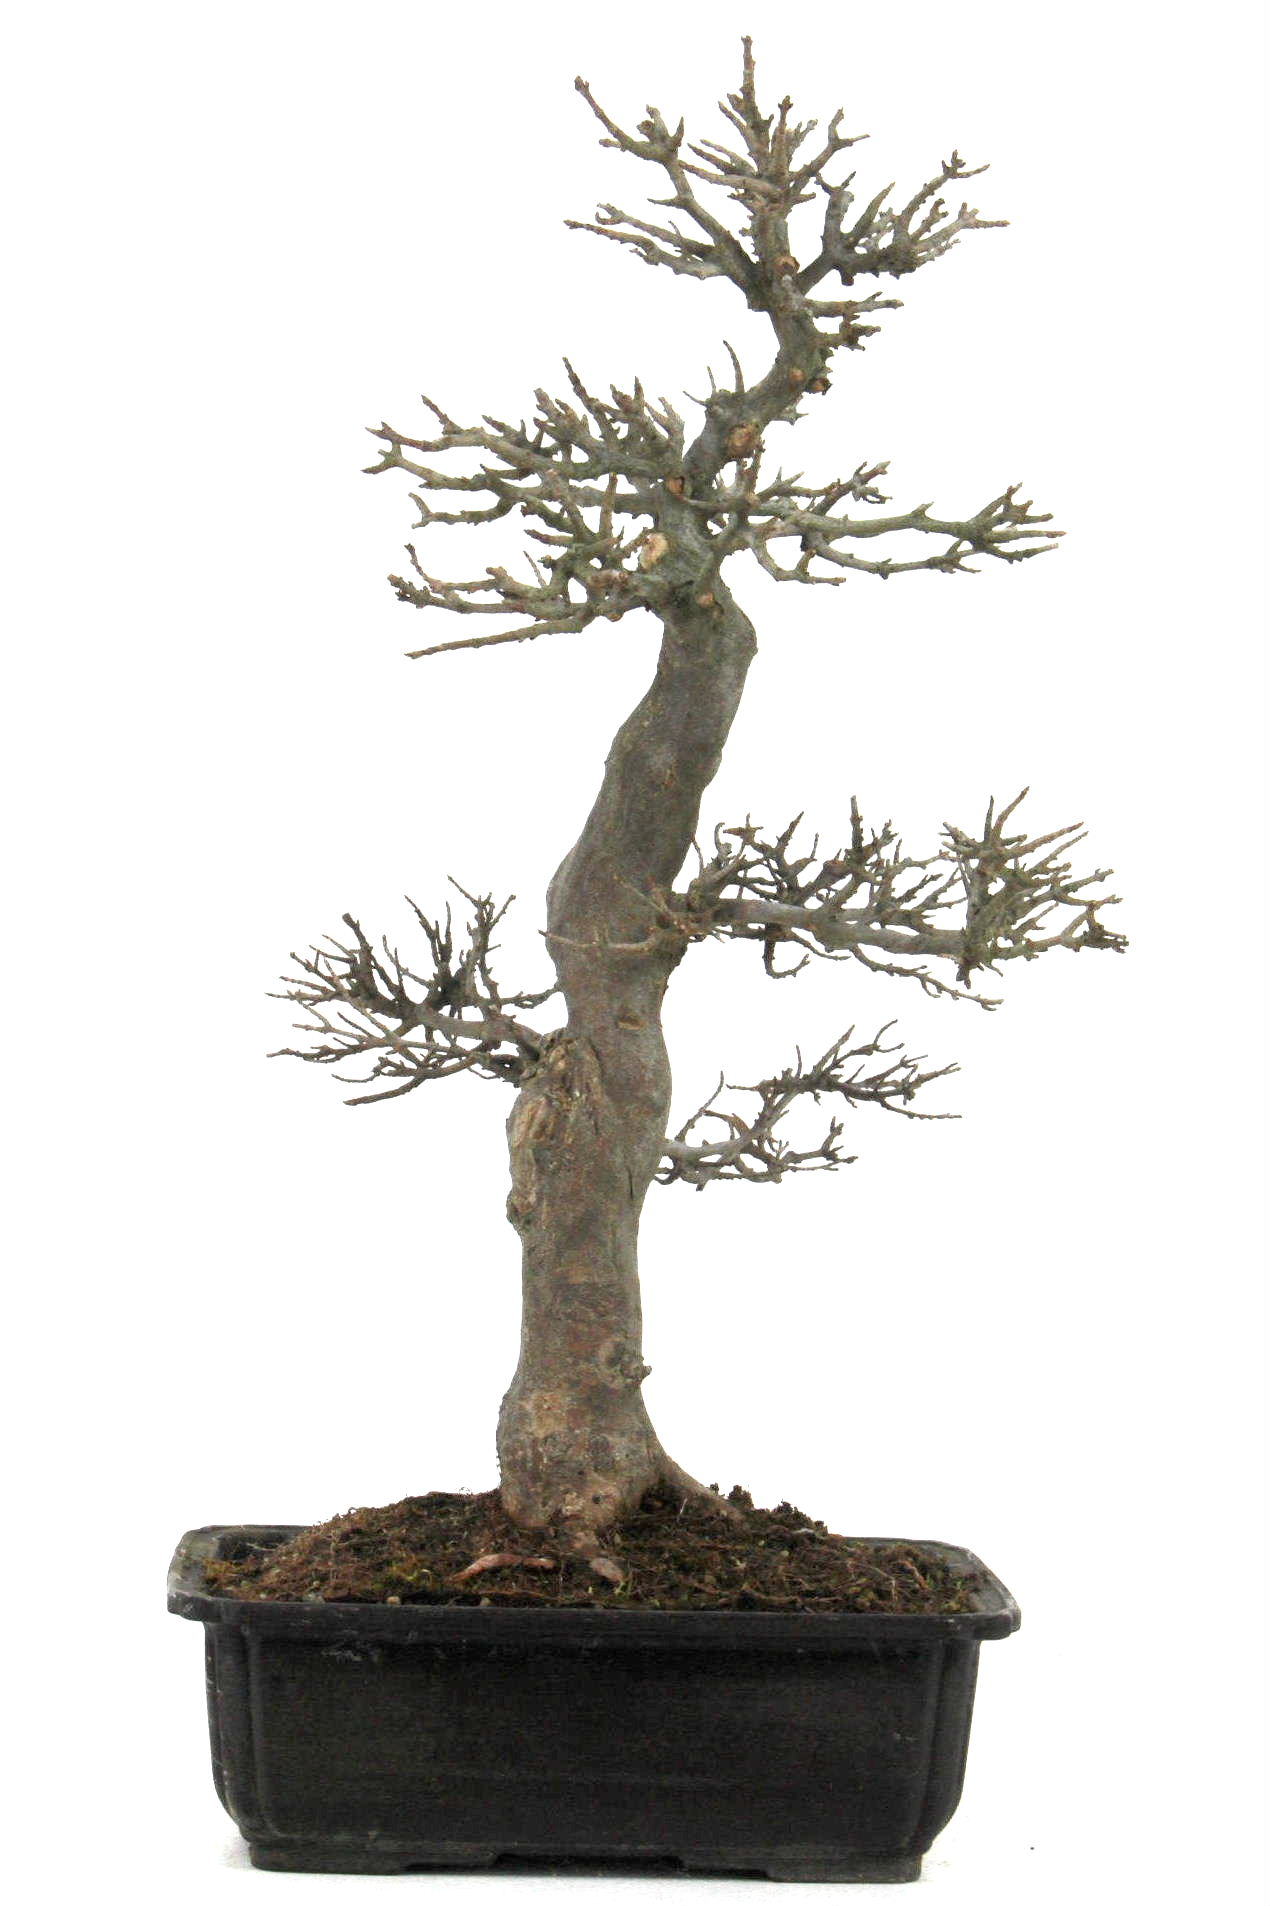 Bonsai dreispitz ahorn 60 cm 2622 bei oyaki bonsai kaufen for Bonsai onlineshop